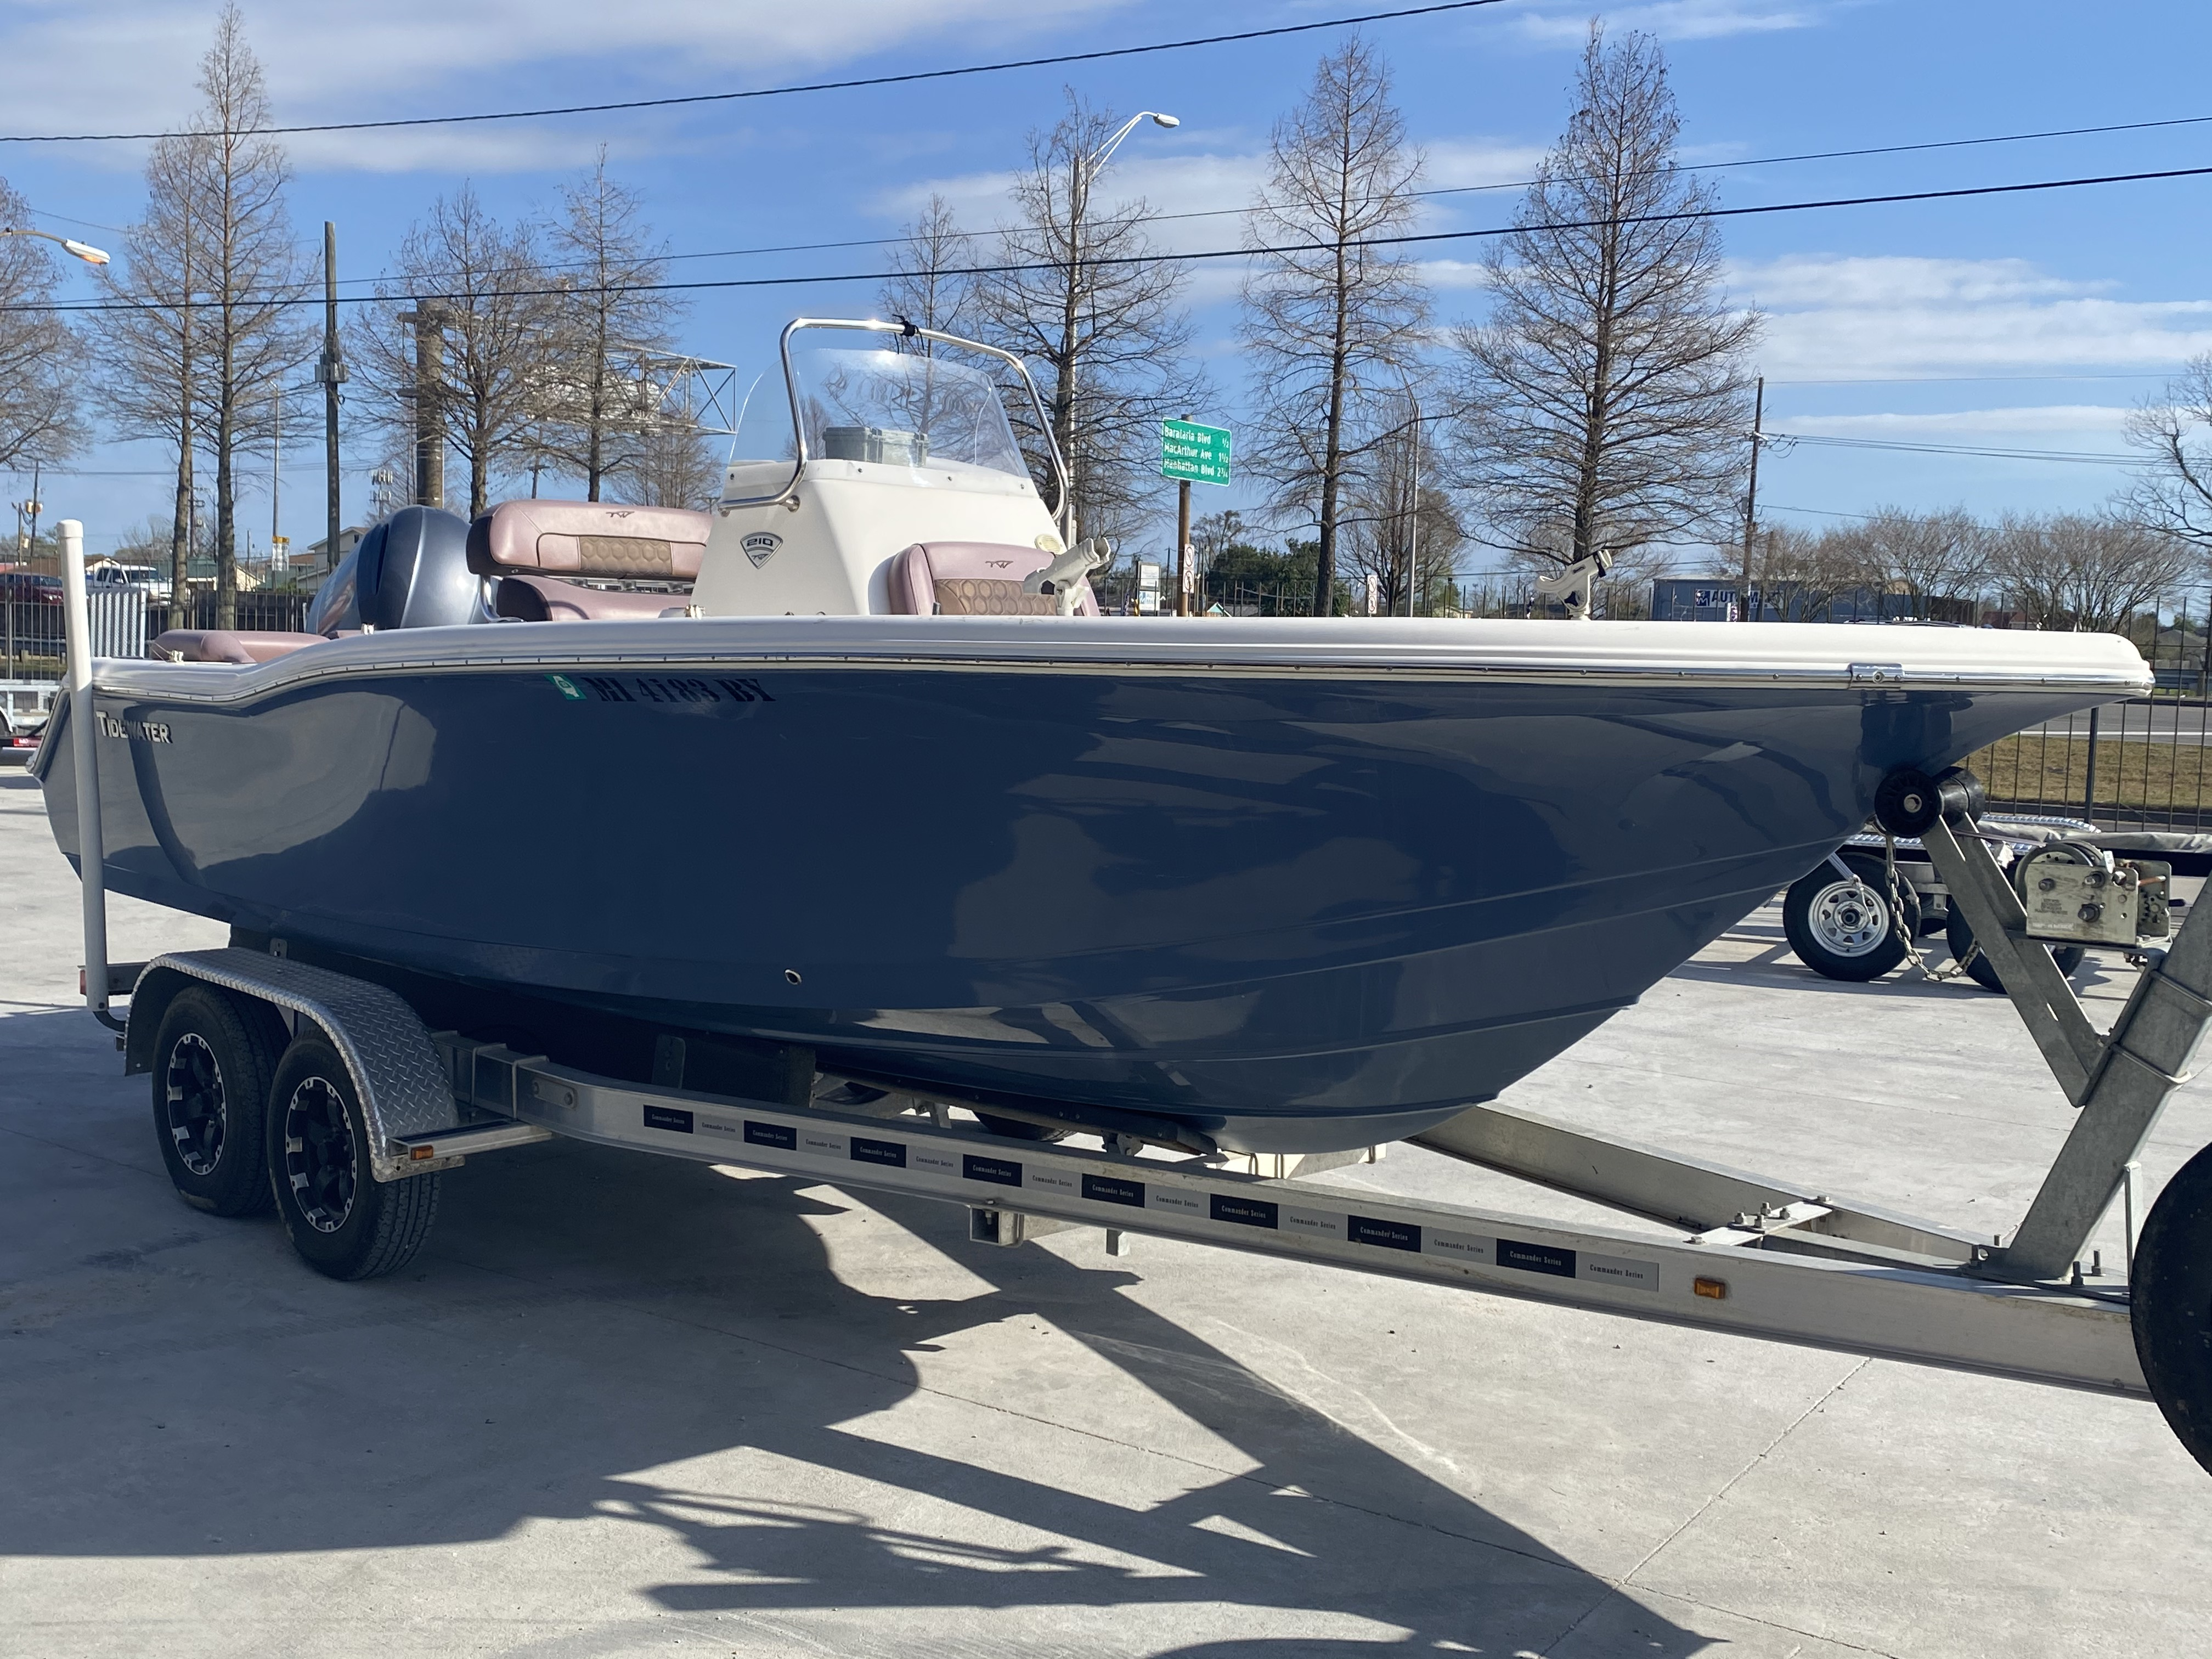 2017 Tidewater boat for sale, model of the boat is 210 & Image # 11 of 19